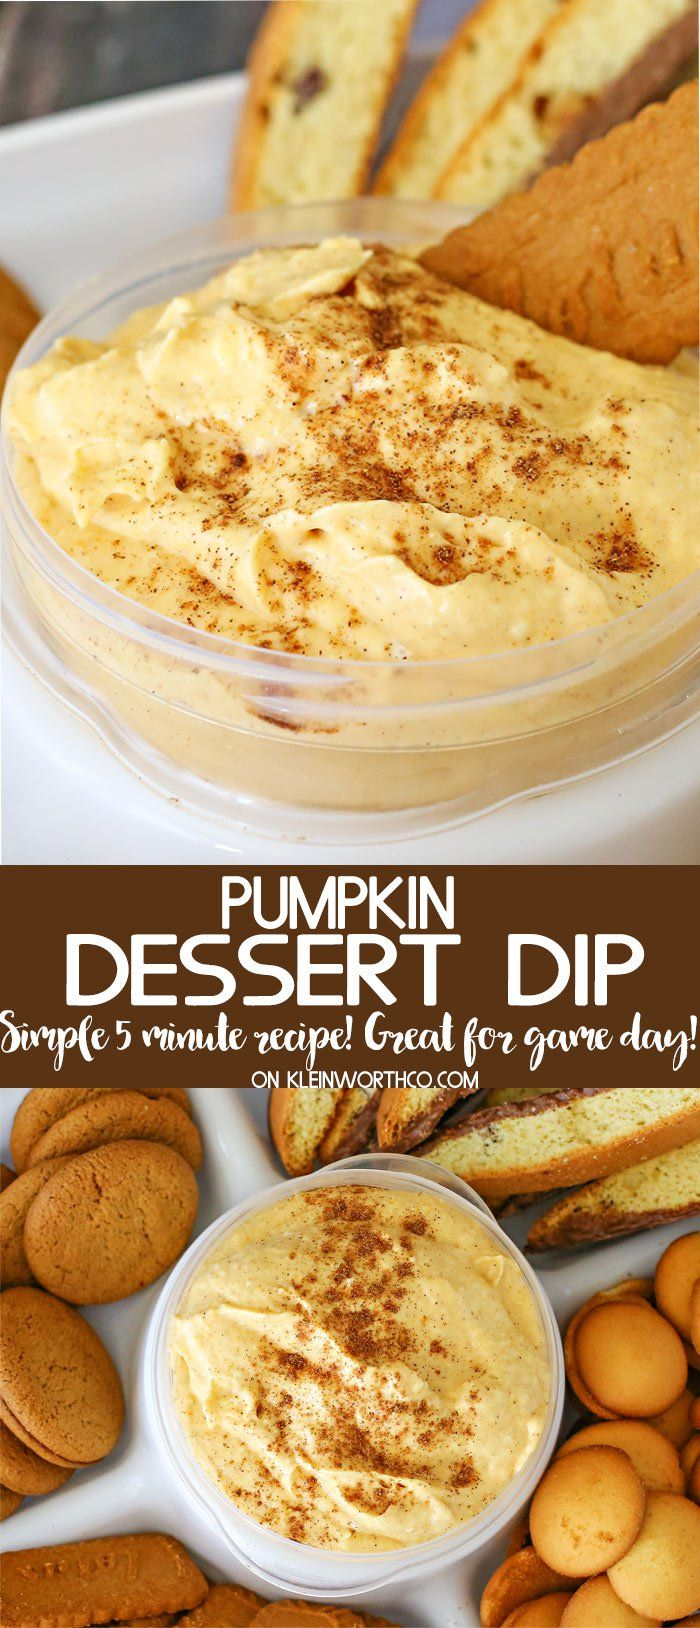 This Pumpkin Dip {Easy Tailgating Snack} is a delicious treat for dipping all those wonderful fall flavored cookies. Quick & easy desserts on the go. #pumpkindip